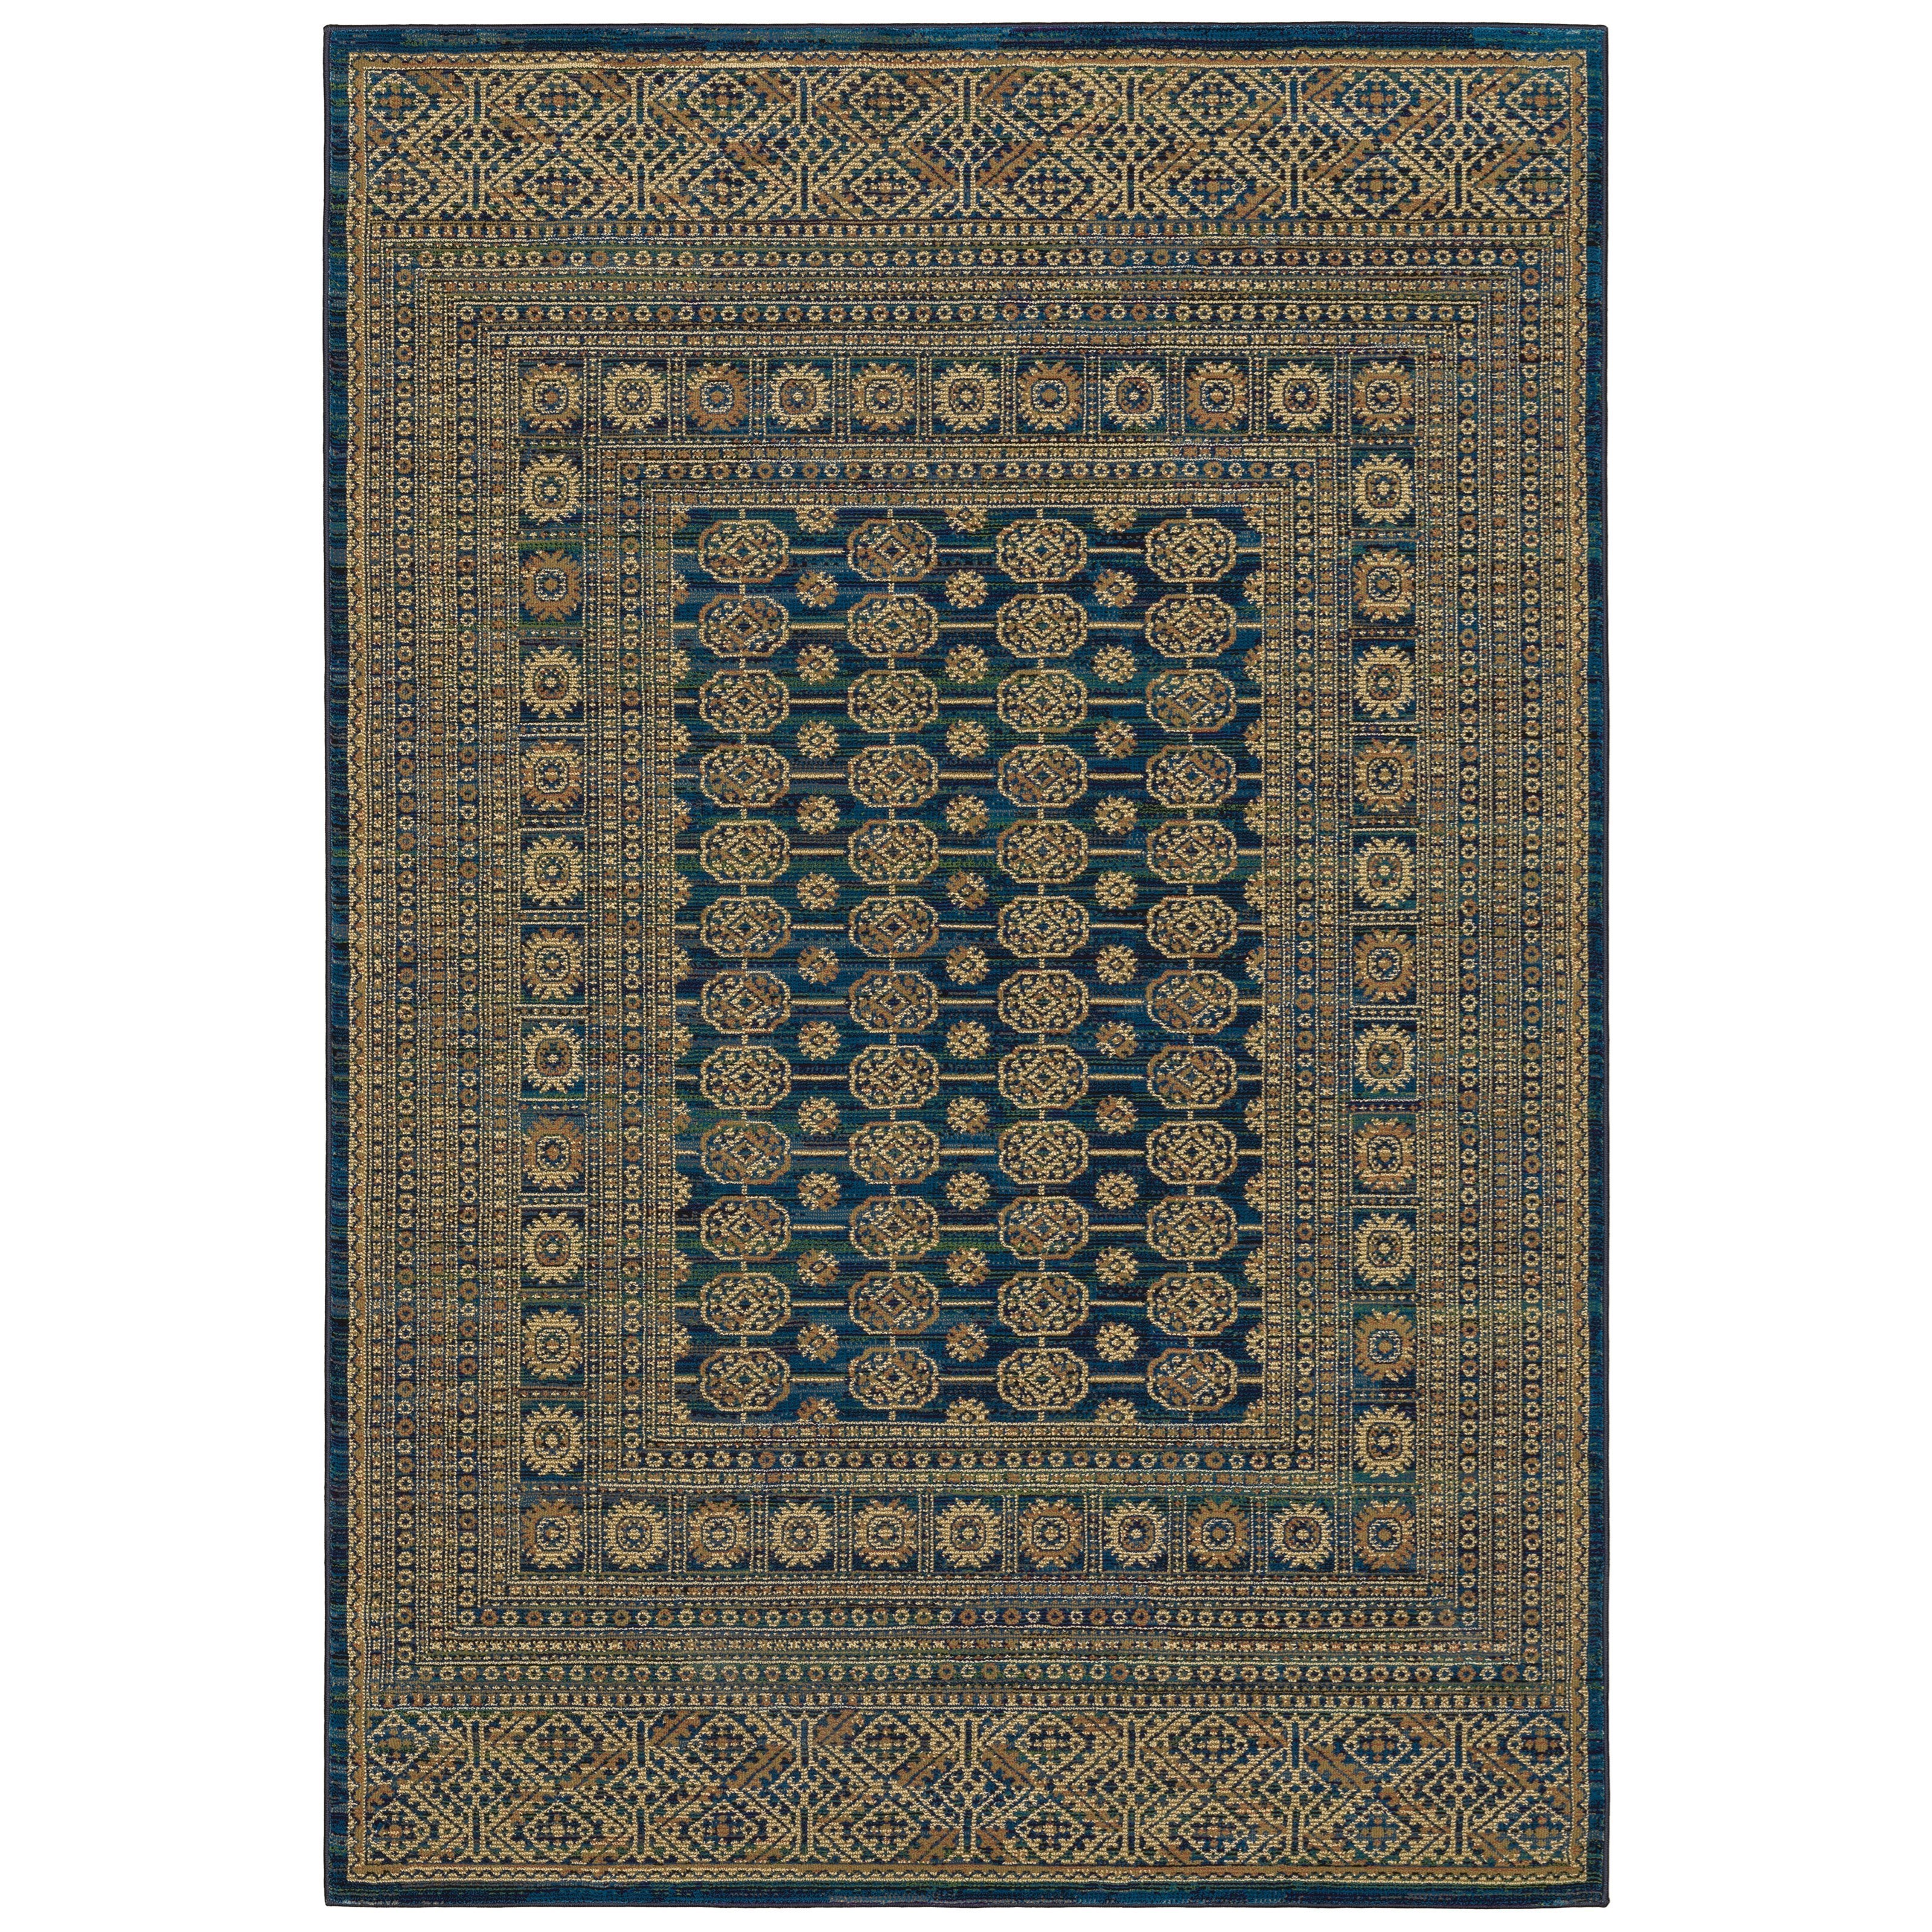 "Ankara 5' 3"" X  7' 6"" Rectangle Rug by Oriental Weavers at Darvin Furniture"